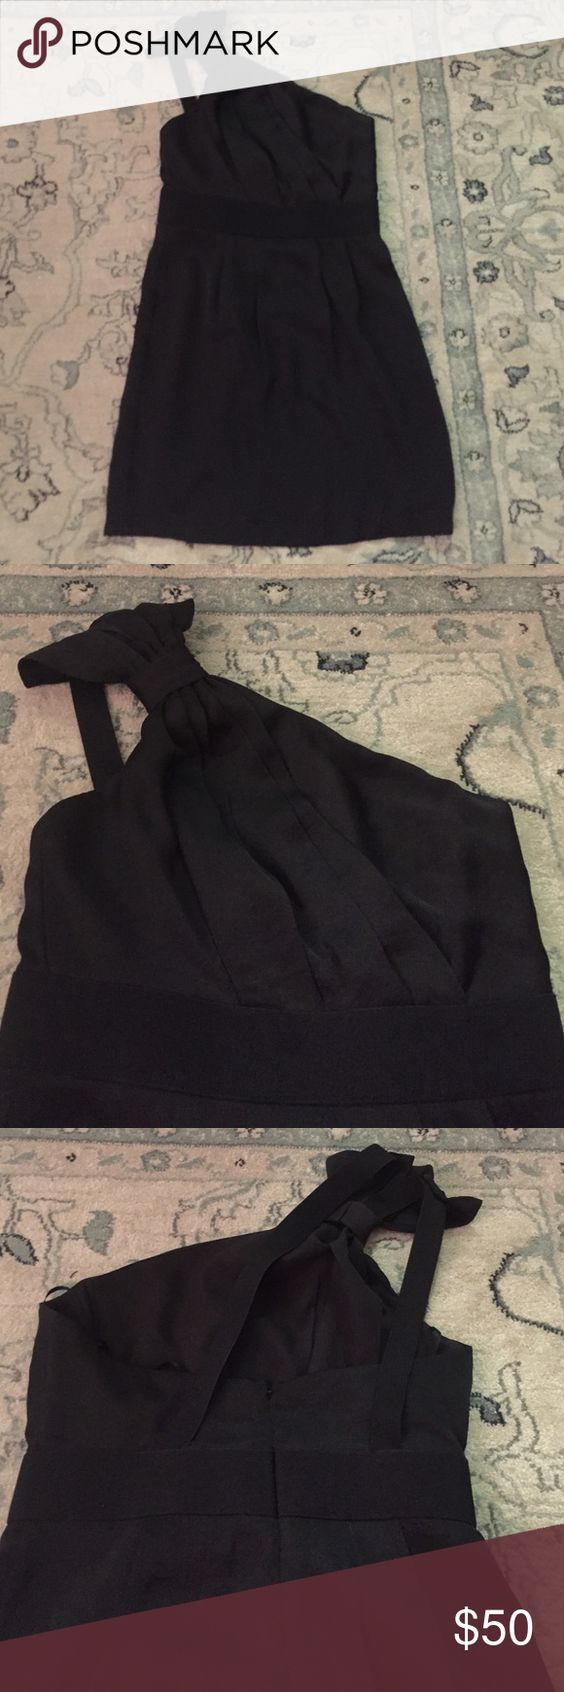 """Gorgeous black one shoulder dress BCBG Generation 1 shoulder (right side) black short dress, size 4. Has some pleating pleating on top and around waist band. Pleated shoulder detail (almost like a bow). Right shoulder detail turns into 2 (stretchy like) straps that adhere to back of dress. Worn only 1x, still has """"hanger straps"""" to not pull on shoulder strap when in closet. Has lining material (pic 4).100% polyester. Has some boning on top area for support. Back zip. Perfect for cocktail…"""